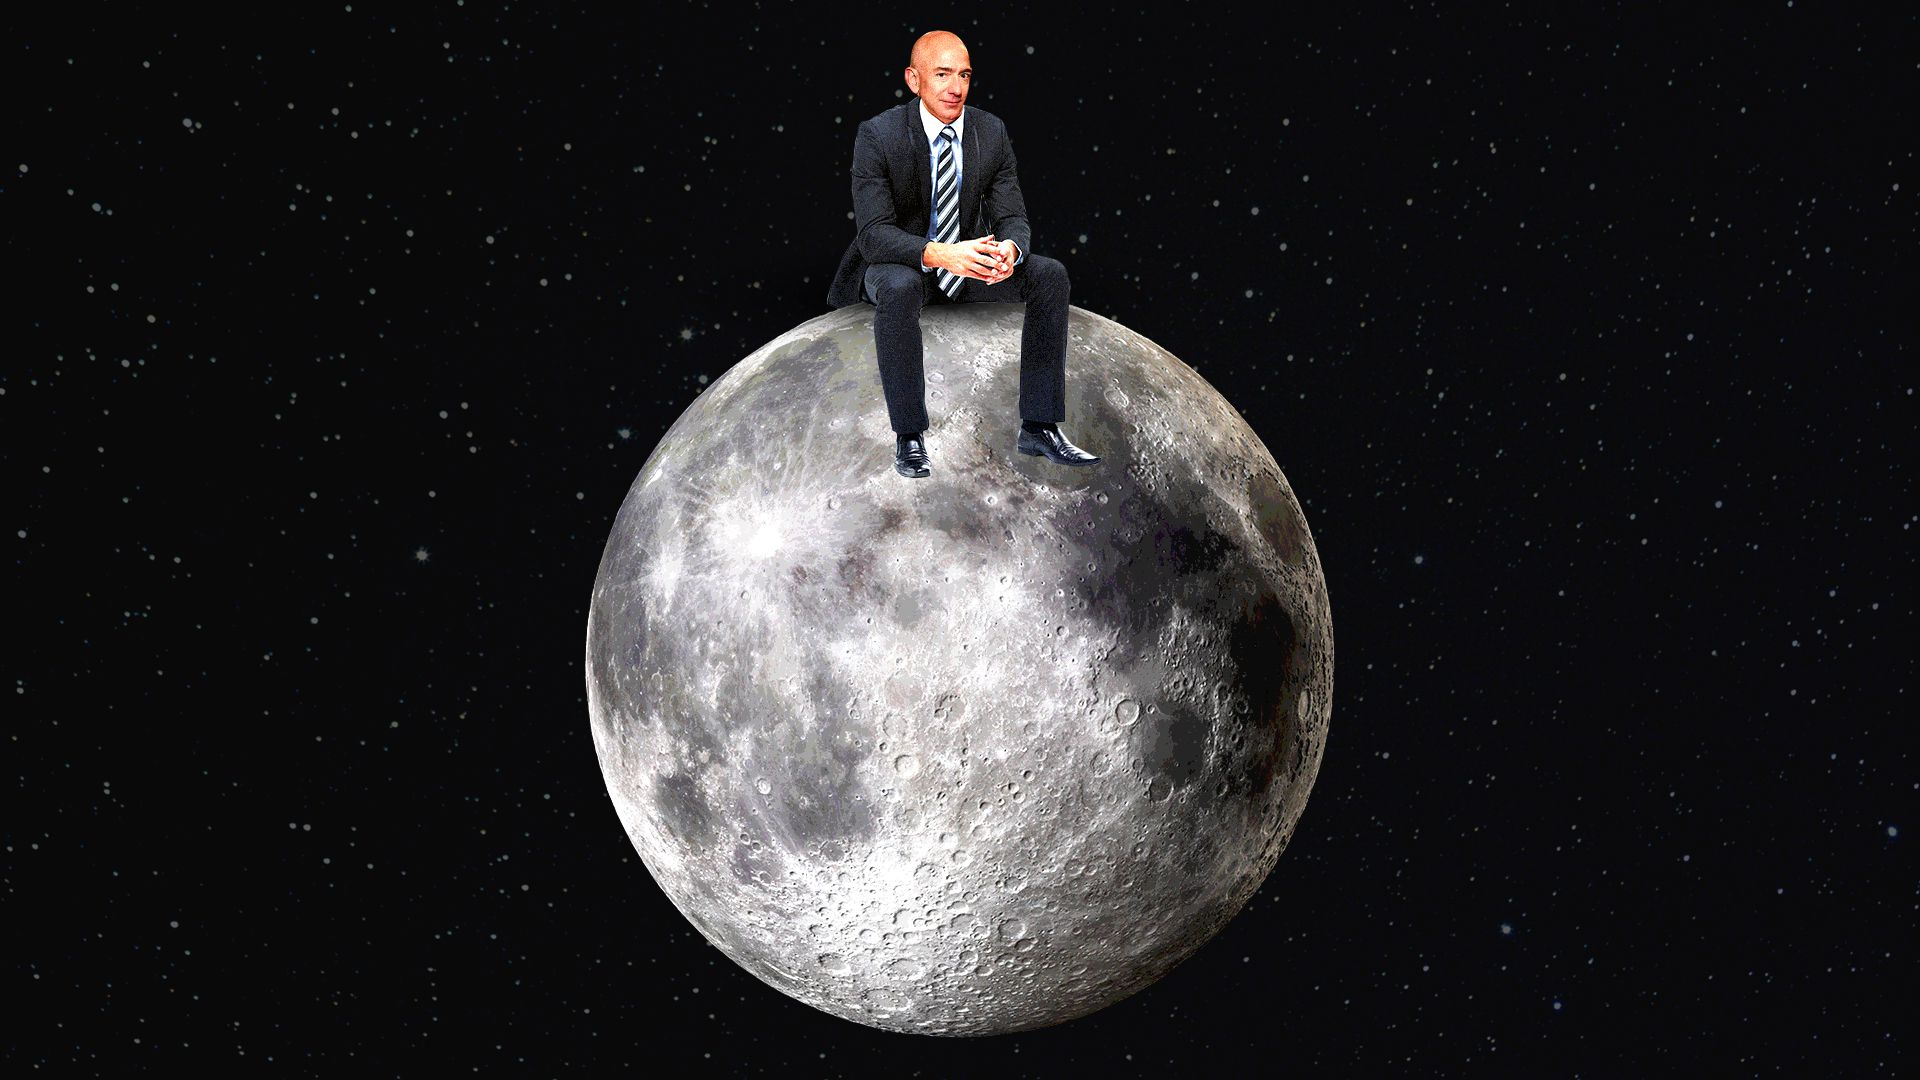 Illustration of Jeff Bezos sitting on the moon